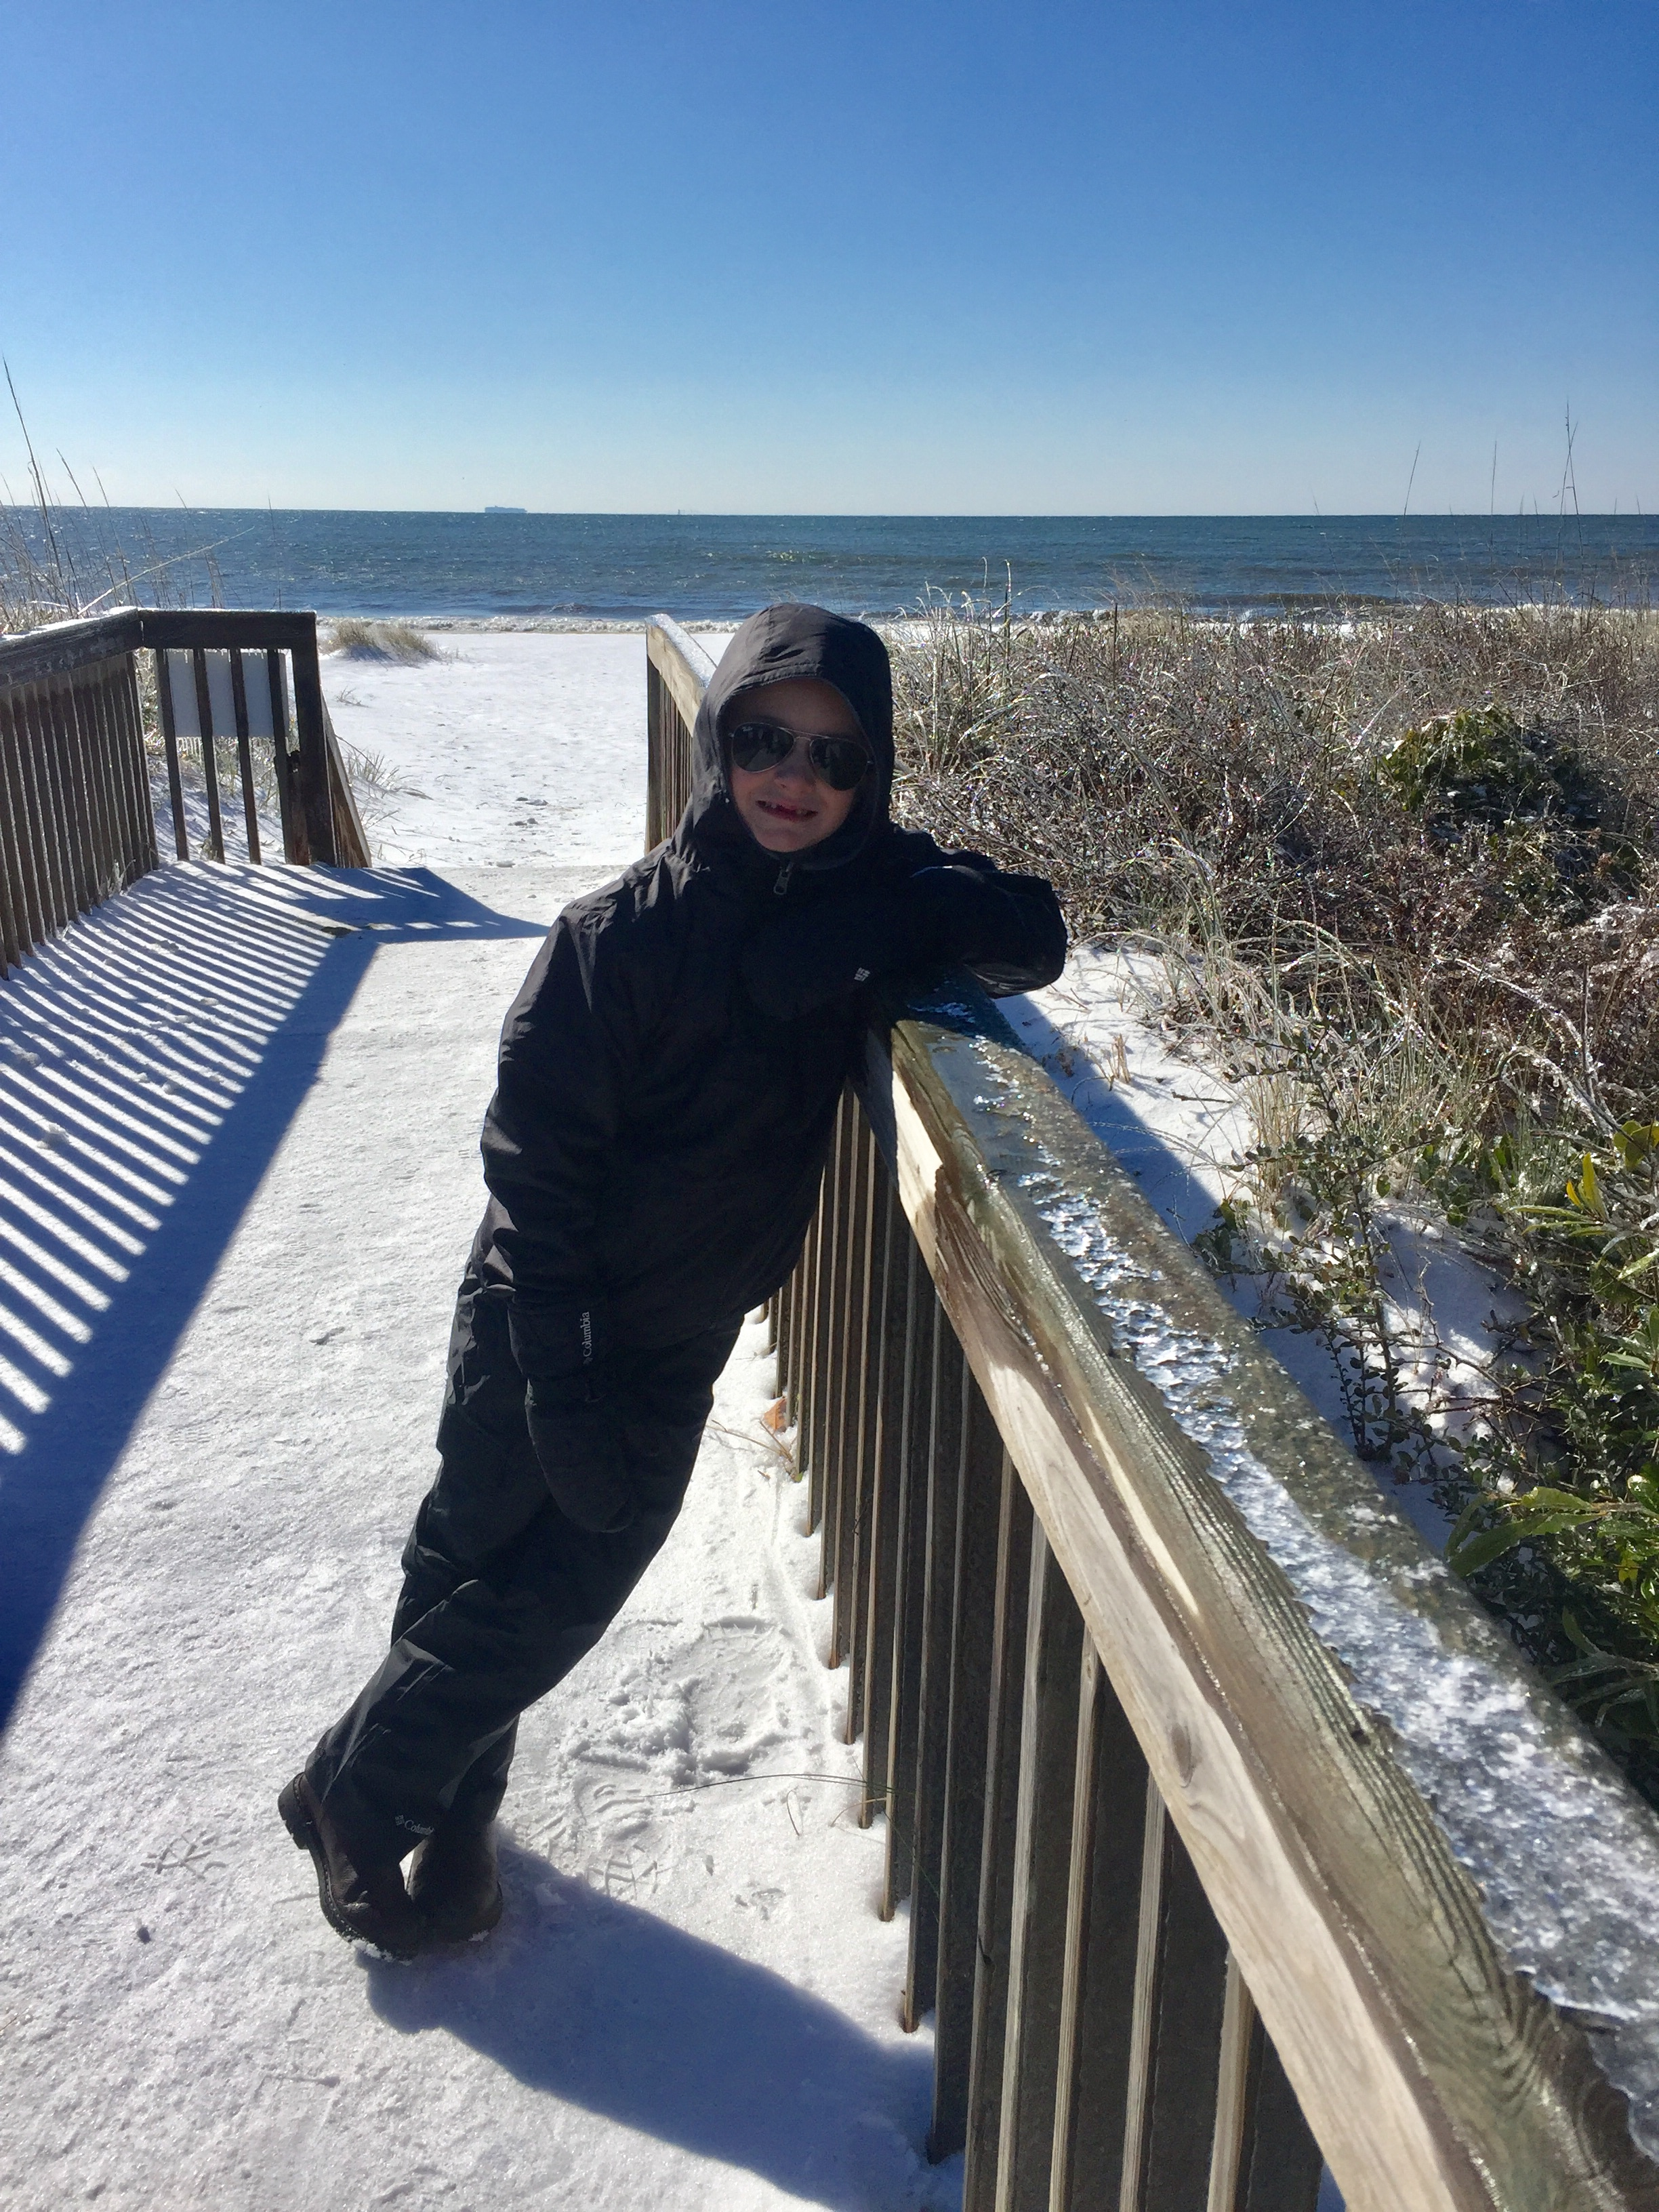 "<div class=""meta image-caption""><div class=""origin-logo origin-image none""><span>none</span></div><span class=""caption-text"">Max Mena, 6, enjoys snow at the beach at Caswell on Oak Island! (Michelle Mena - ABC11 Eyewitness)</span></div>"